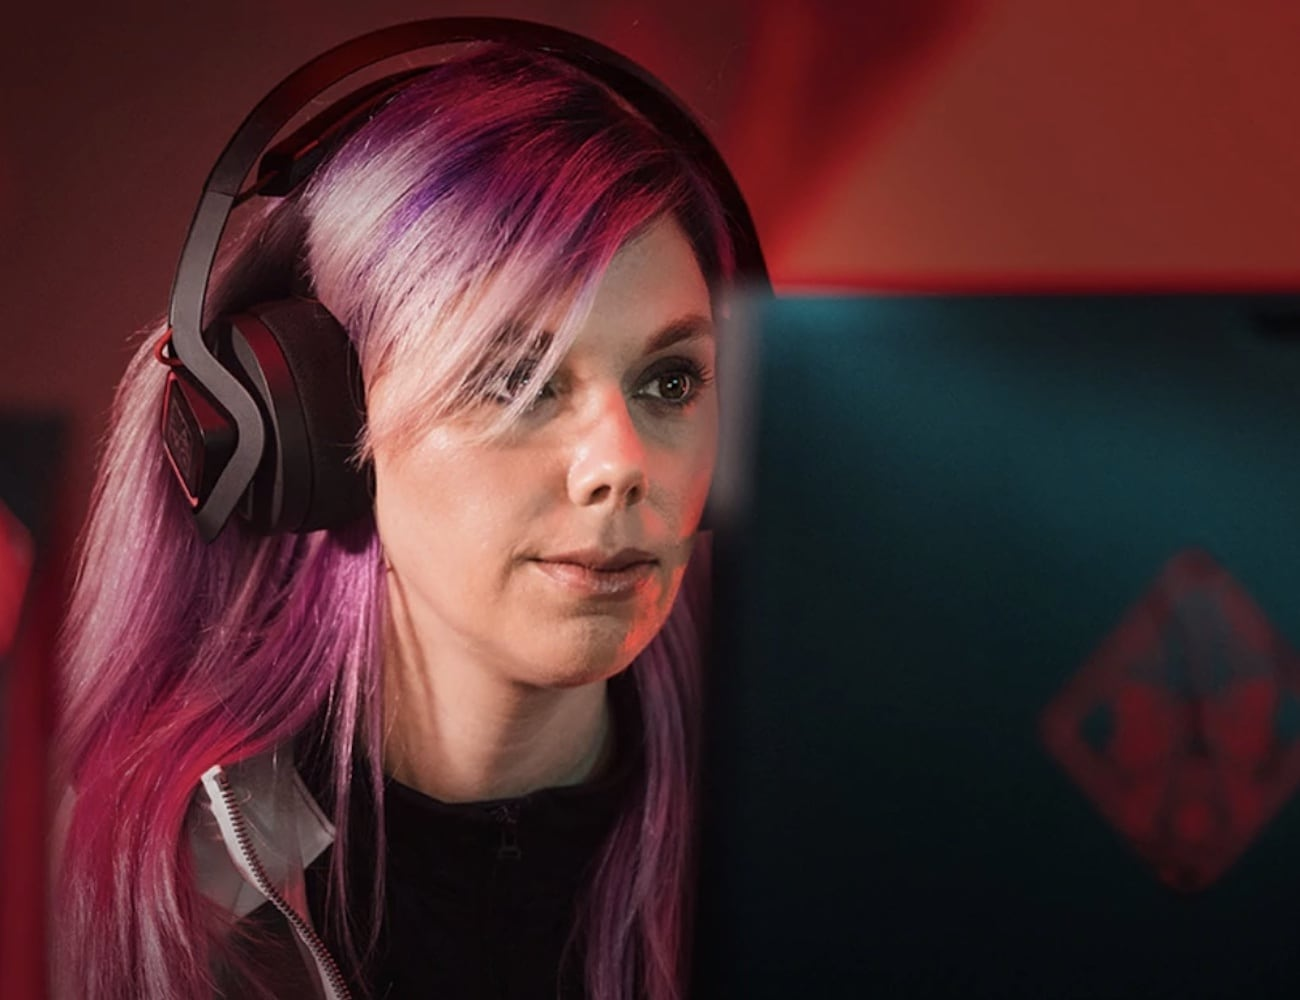 HP OMEN Mindframe Cooling Gaming Headset helps you play for longer